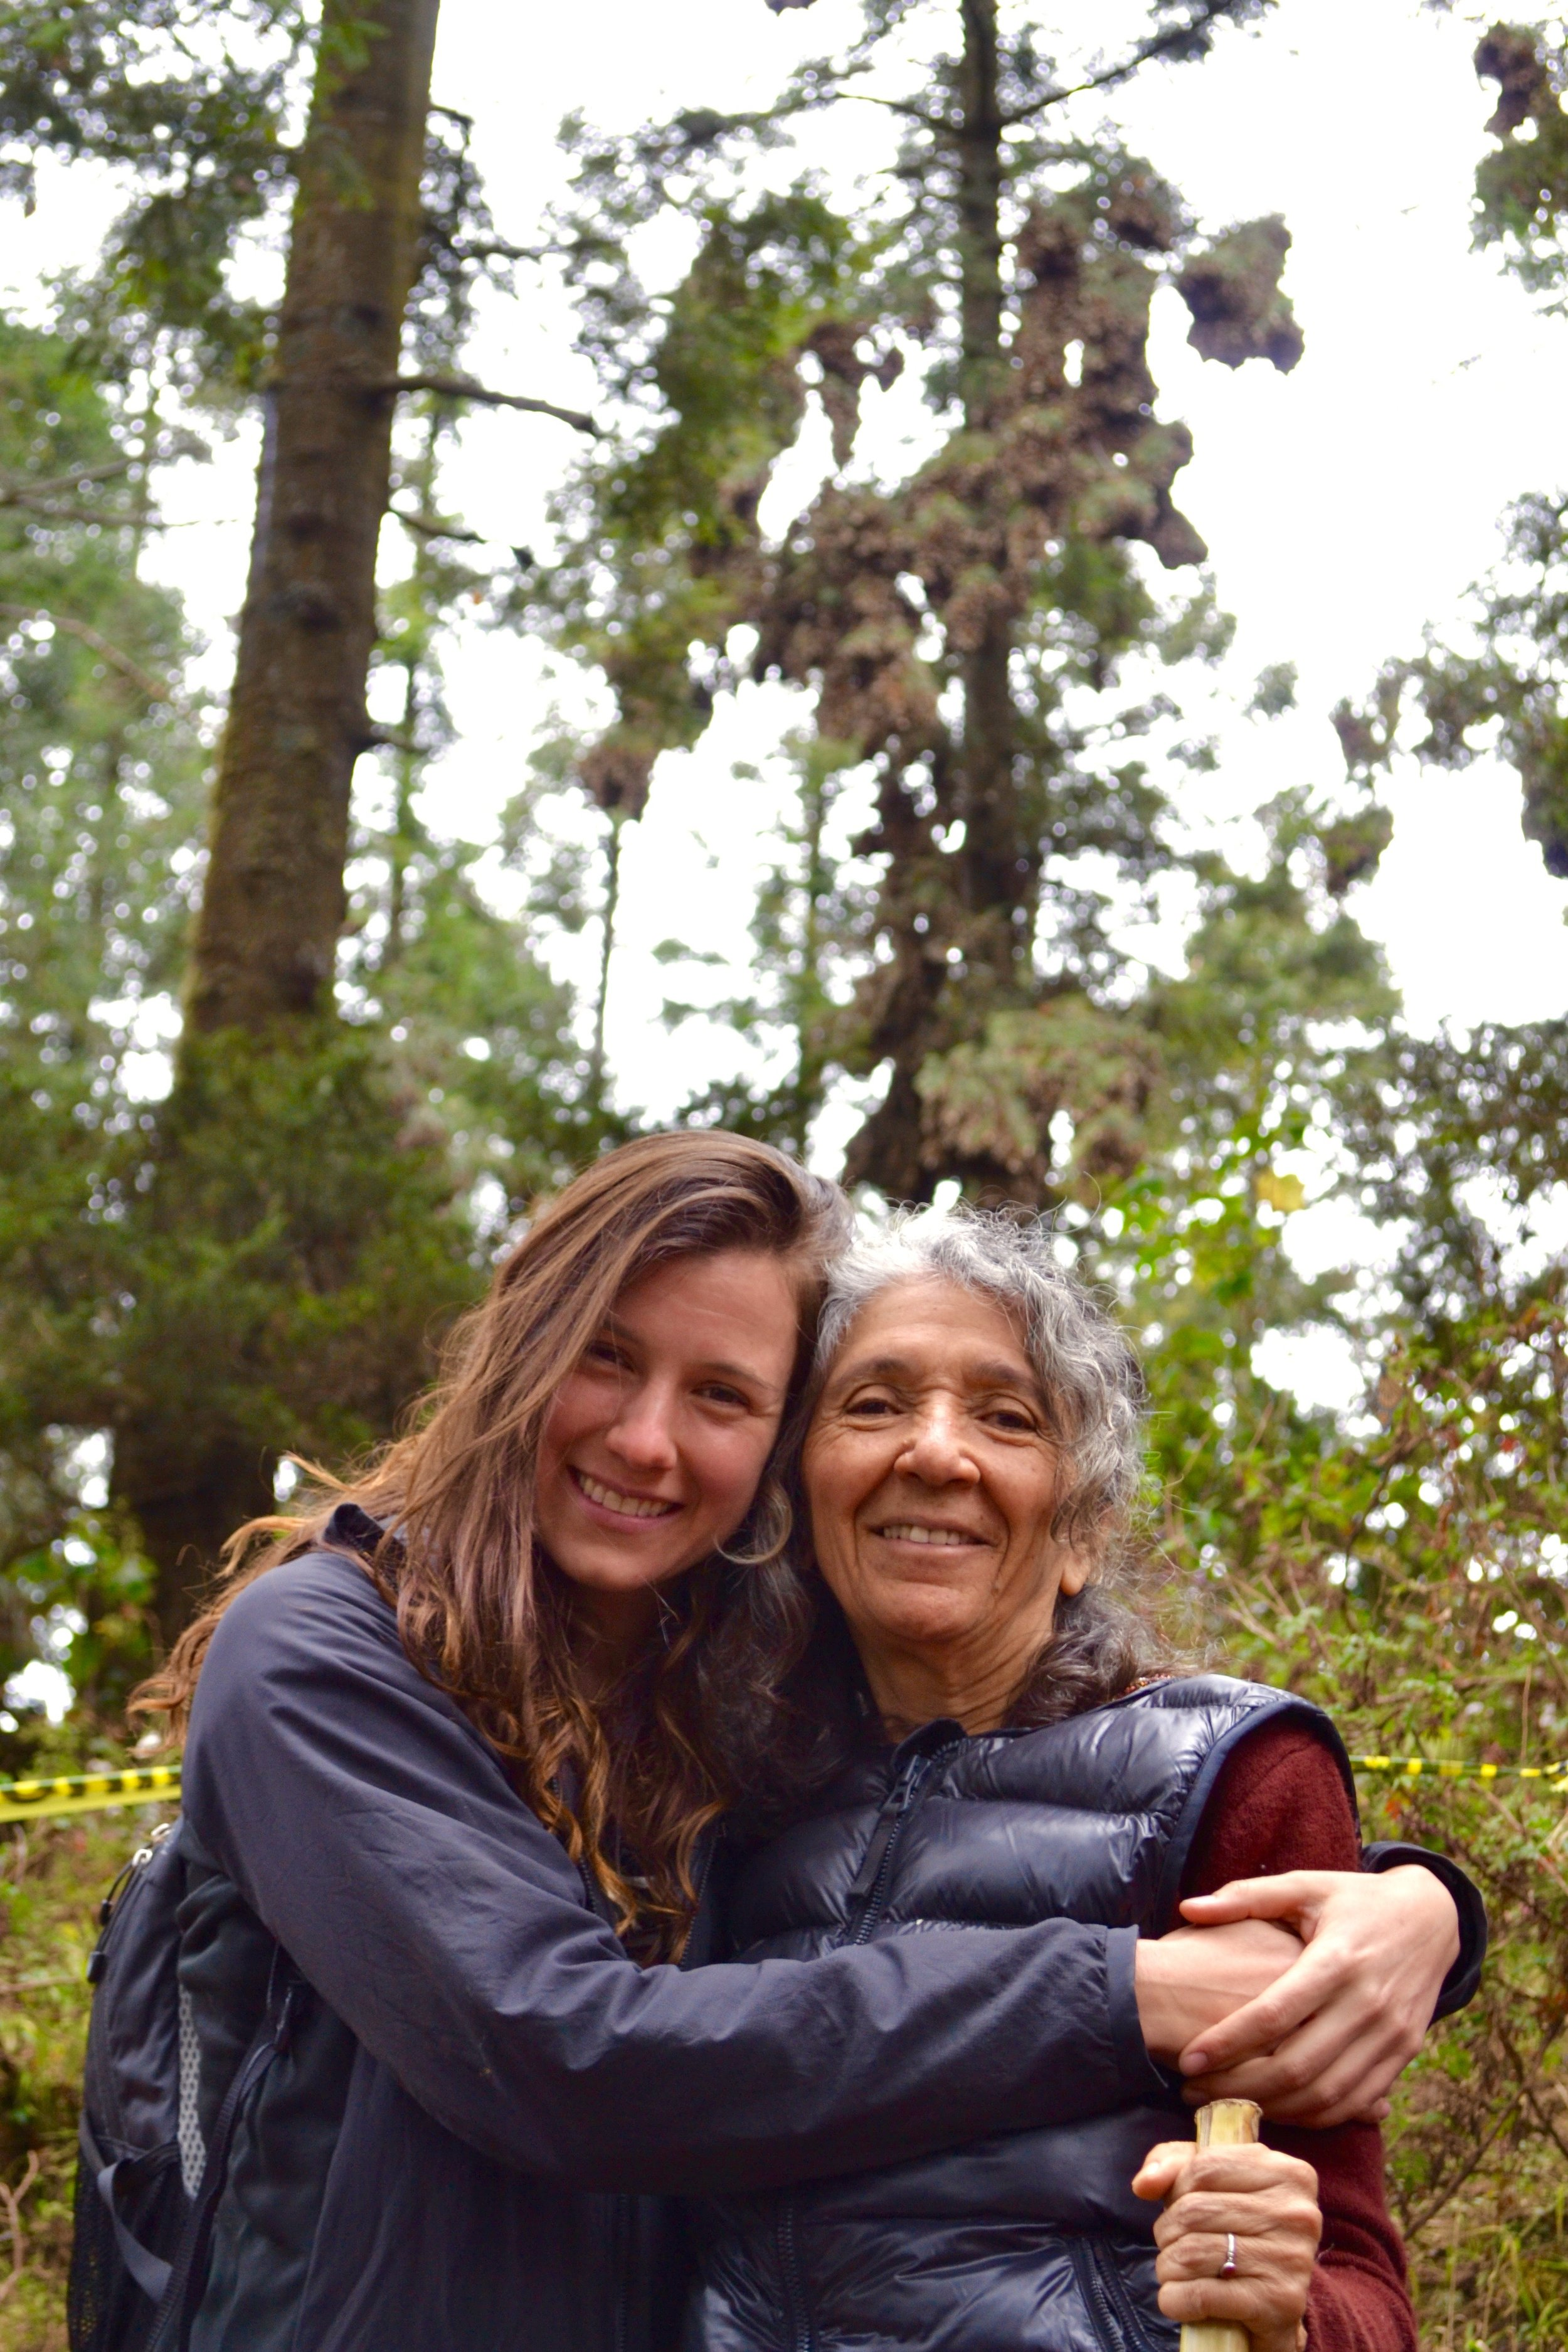 Kate and her aunt Rosa against the backdrop of the Monarch forests.